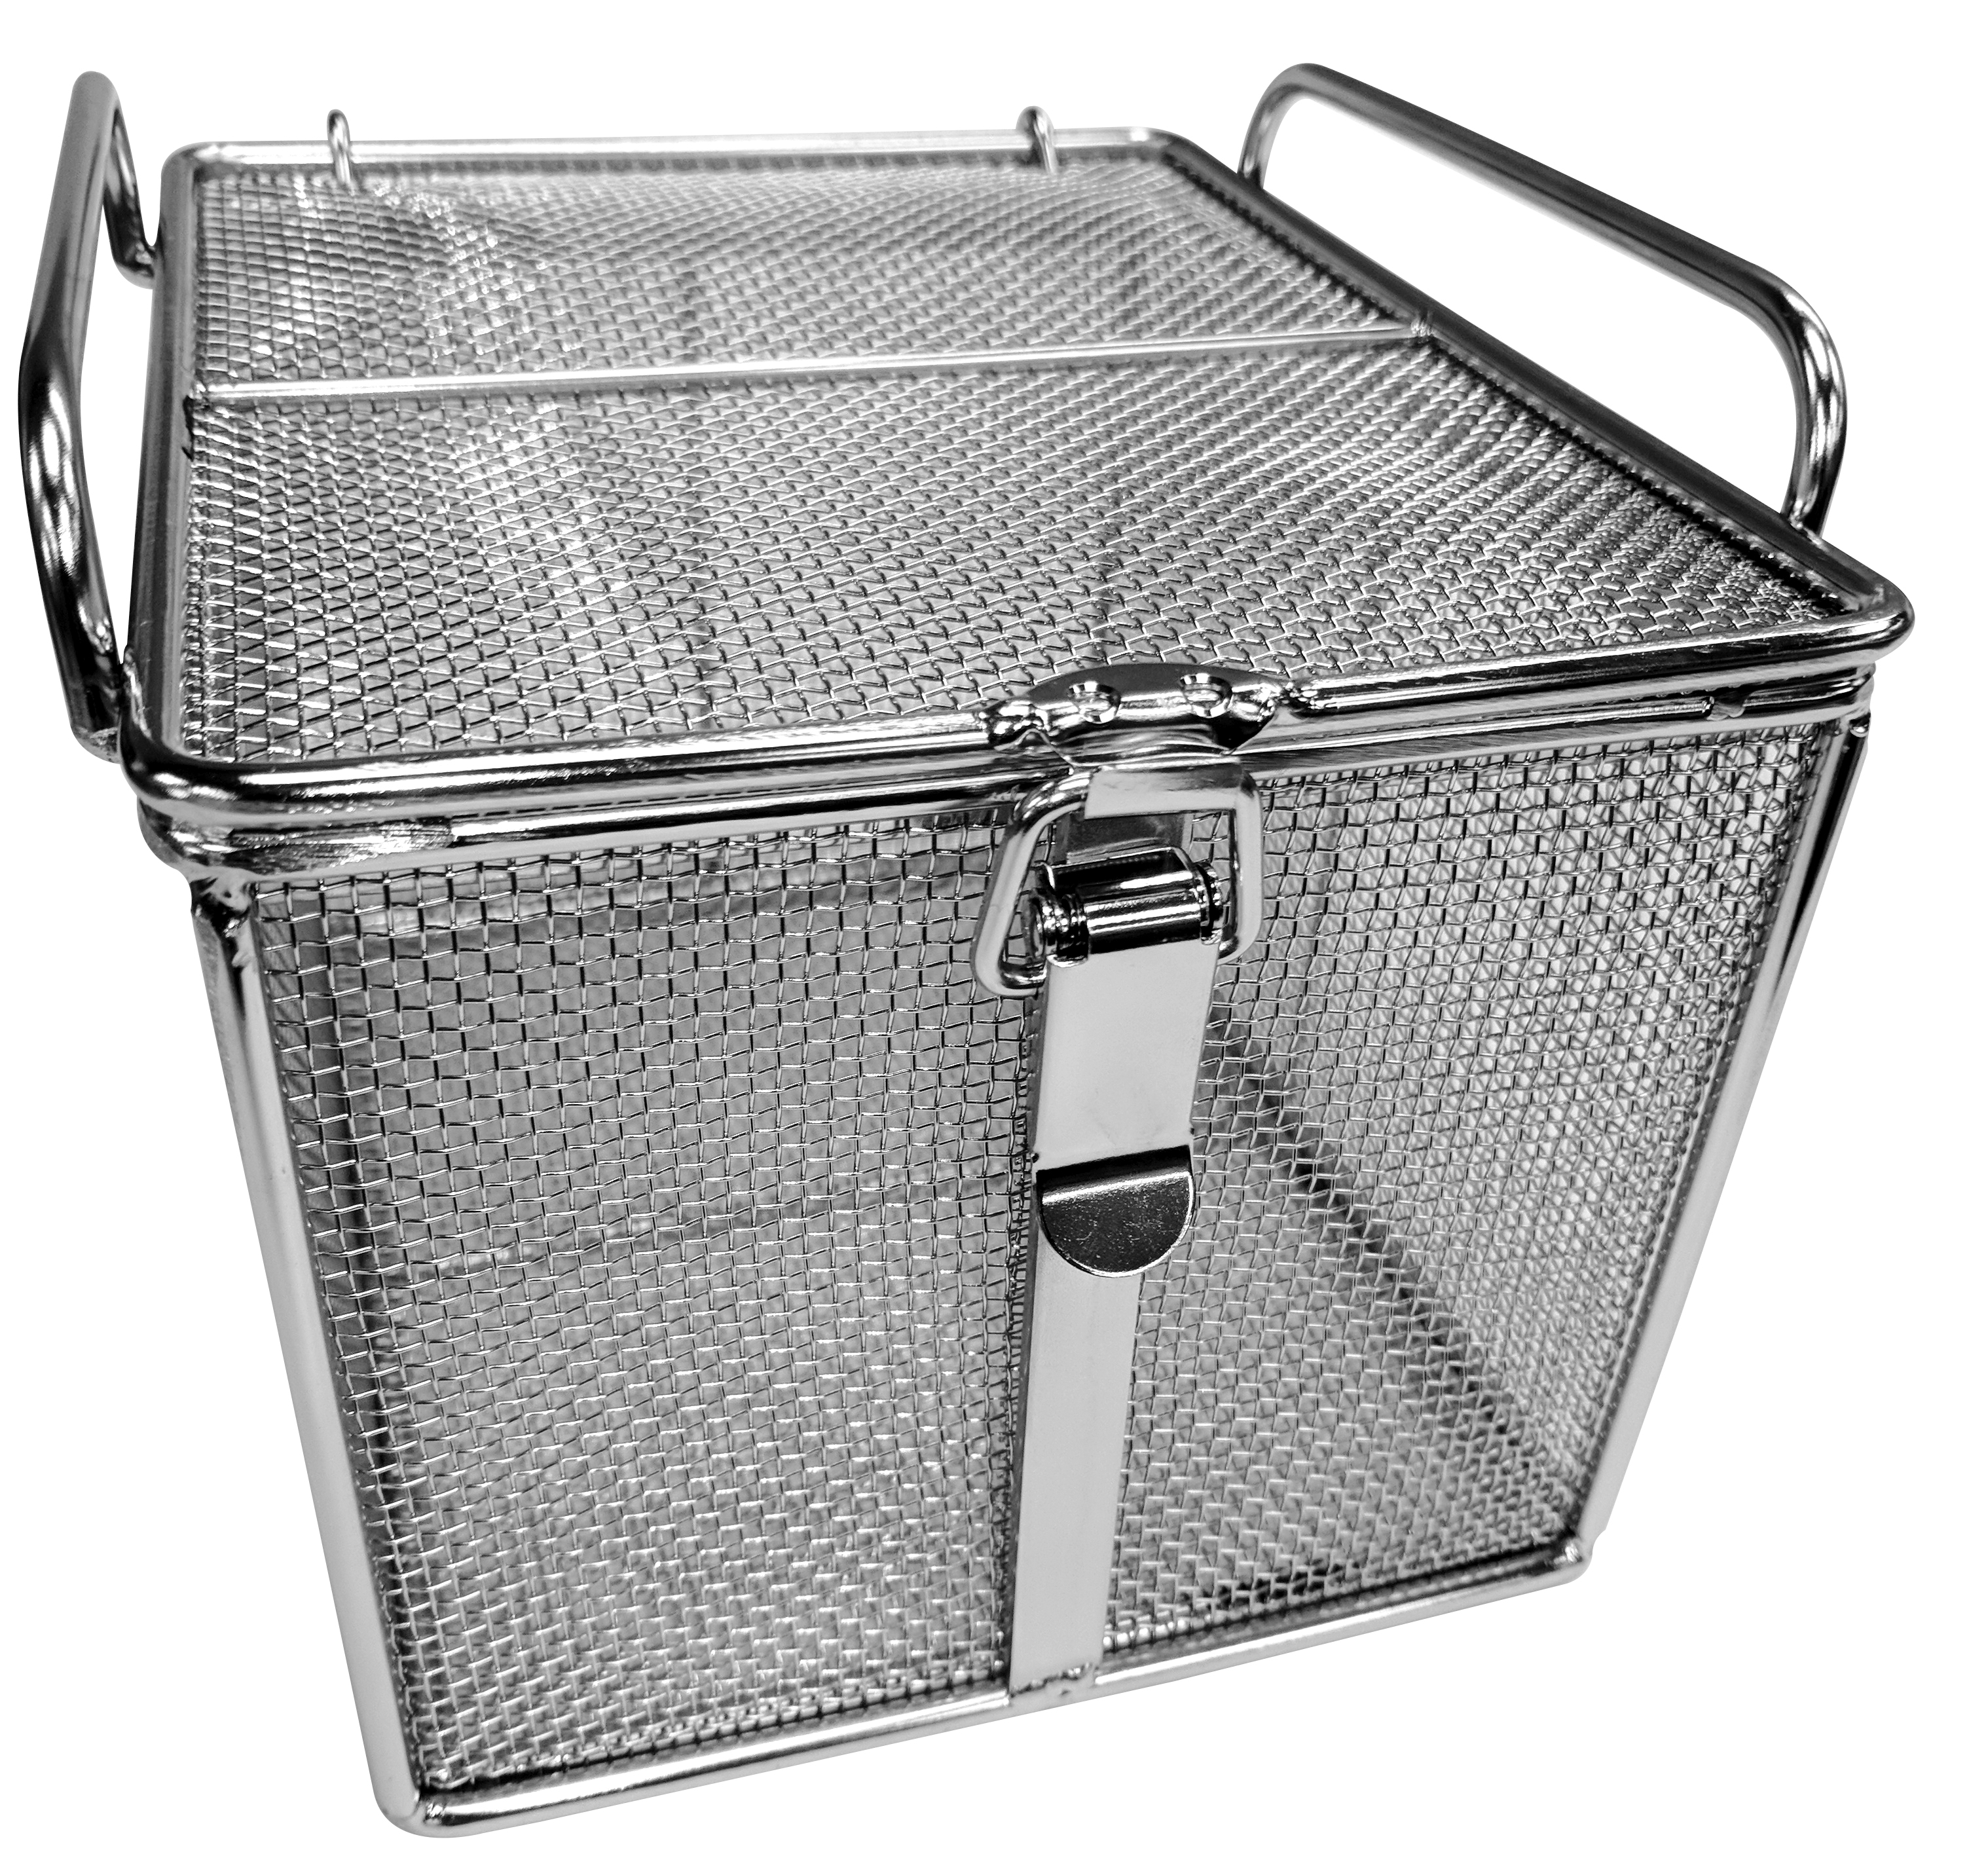 Metal Wash Bin Ultrasonic Decontamination Mesh Baskets Multimesh